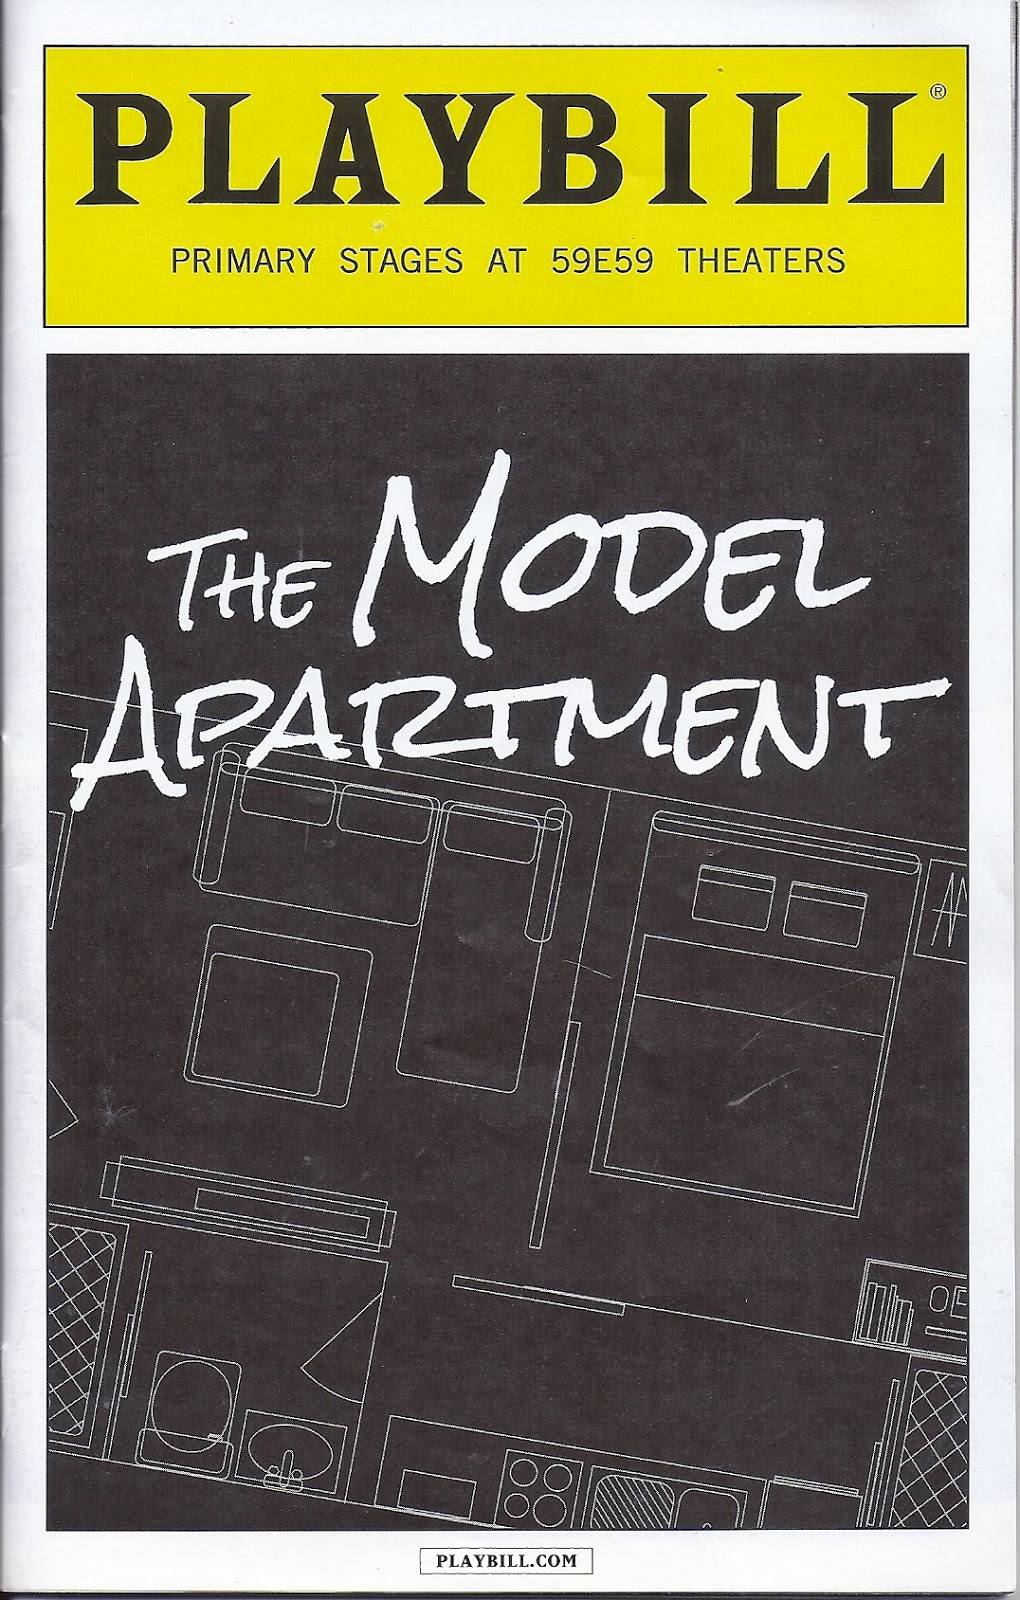 Theatre 39 s leiter side 124 review of the model apartment for The model apartment review